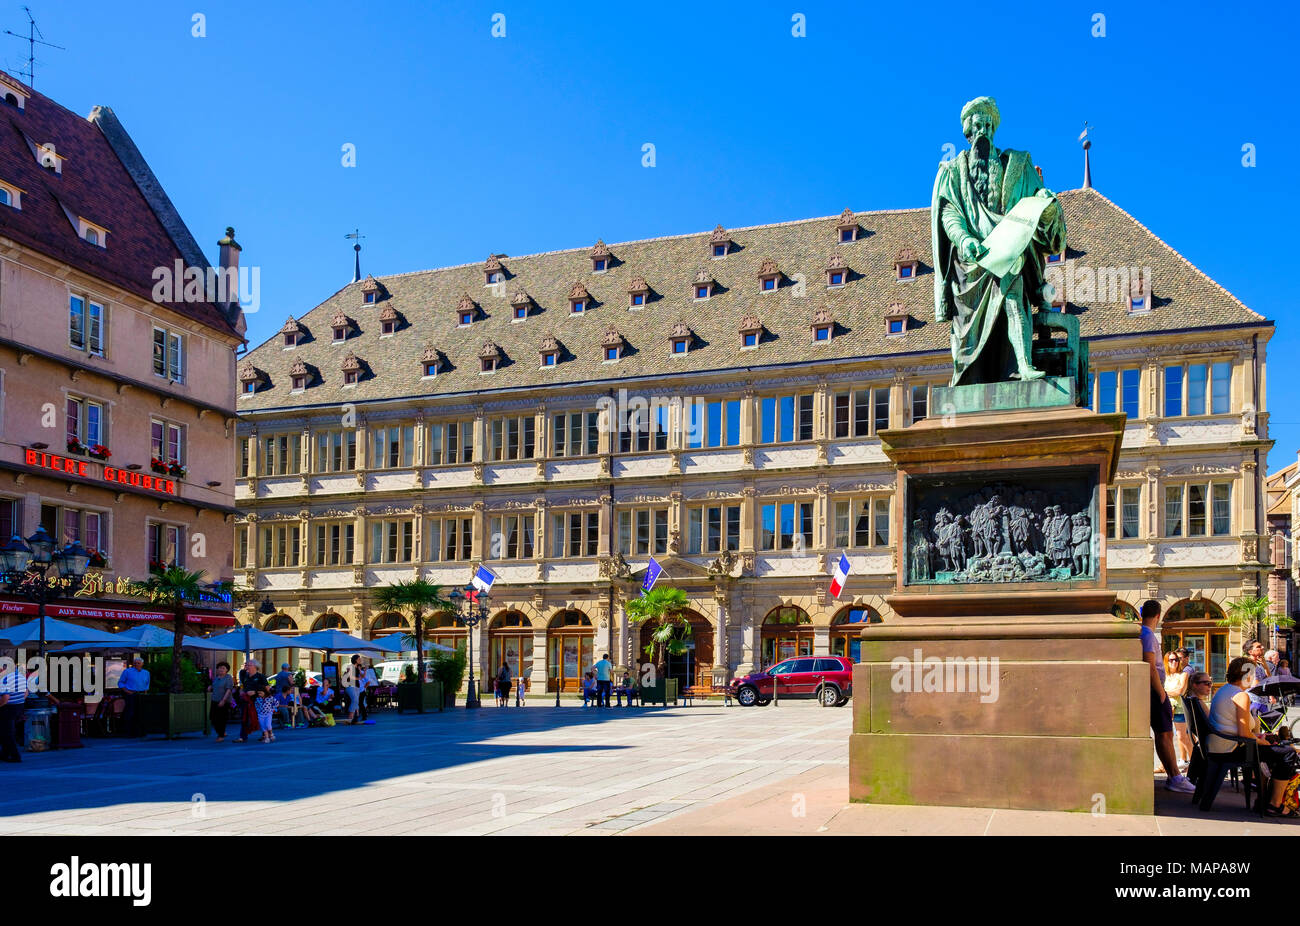 Chambre Du Commerce Strasbourg Chamber Of Commerce Building Gutenberg Statue Place Gutenberg